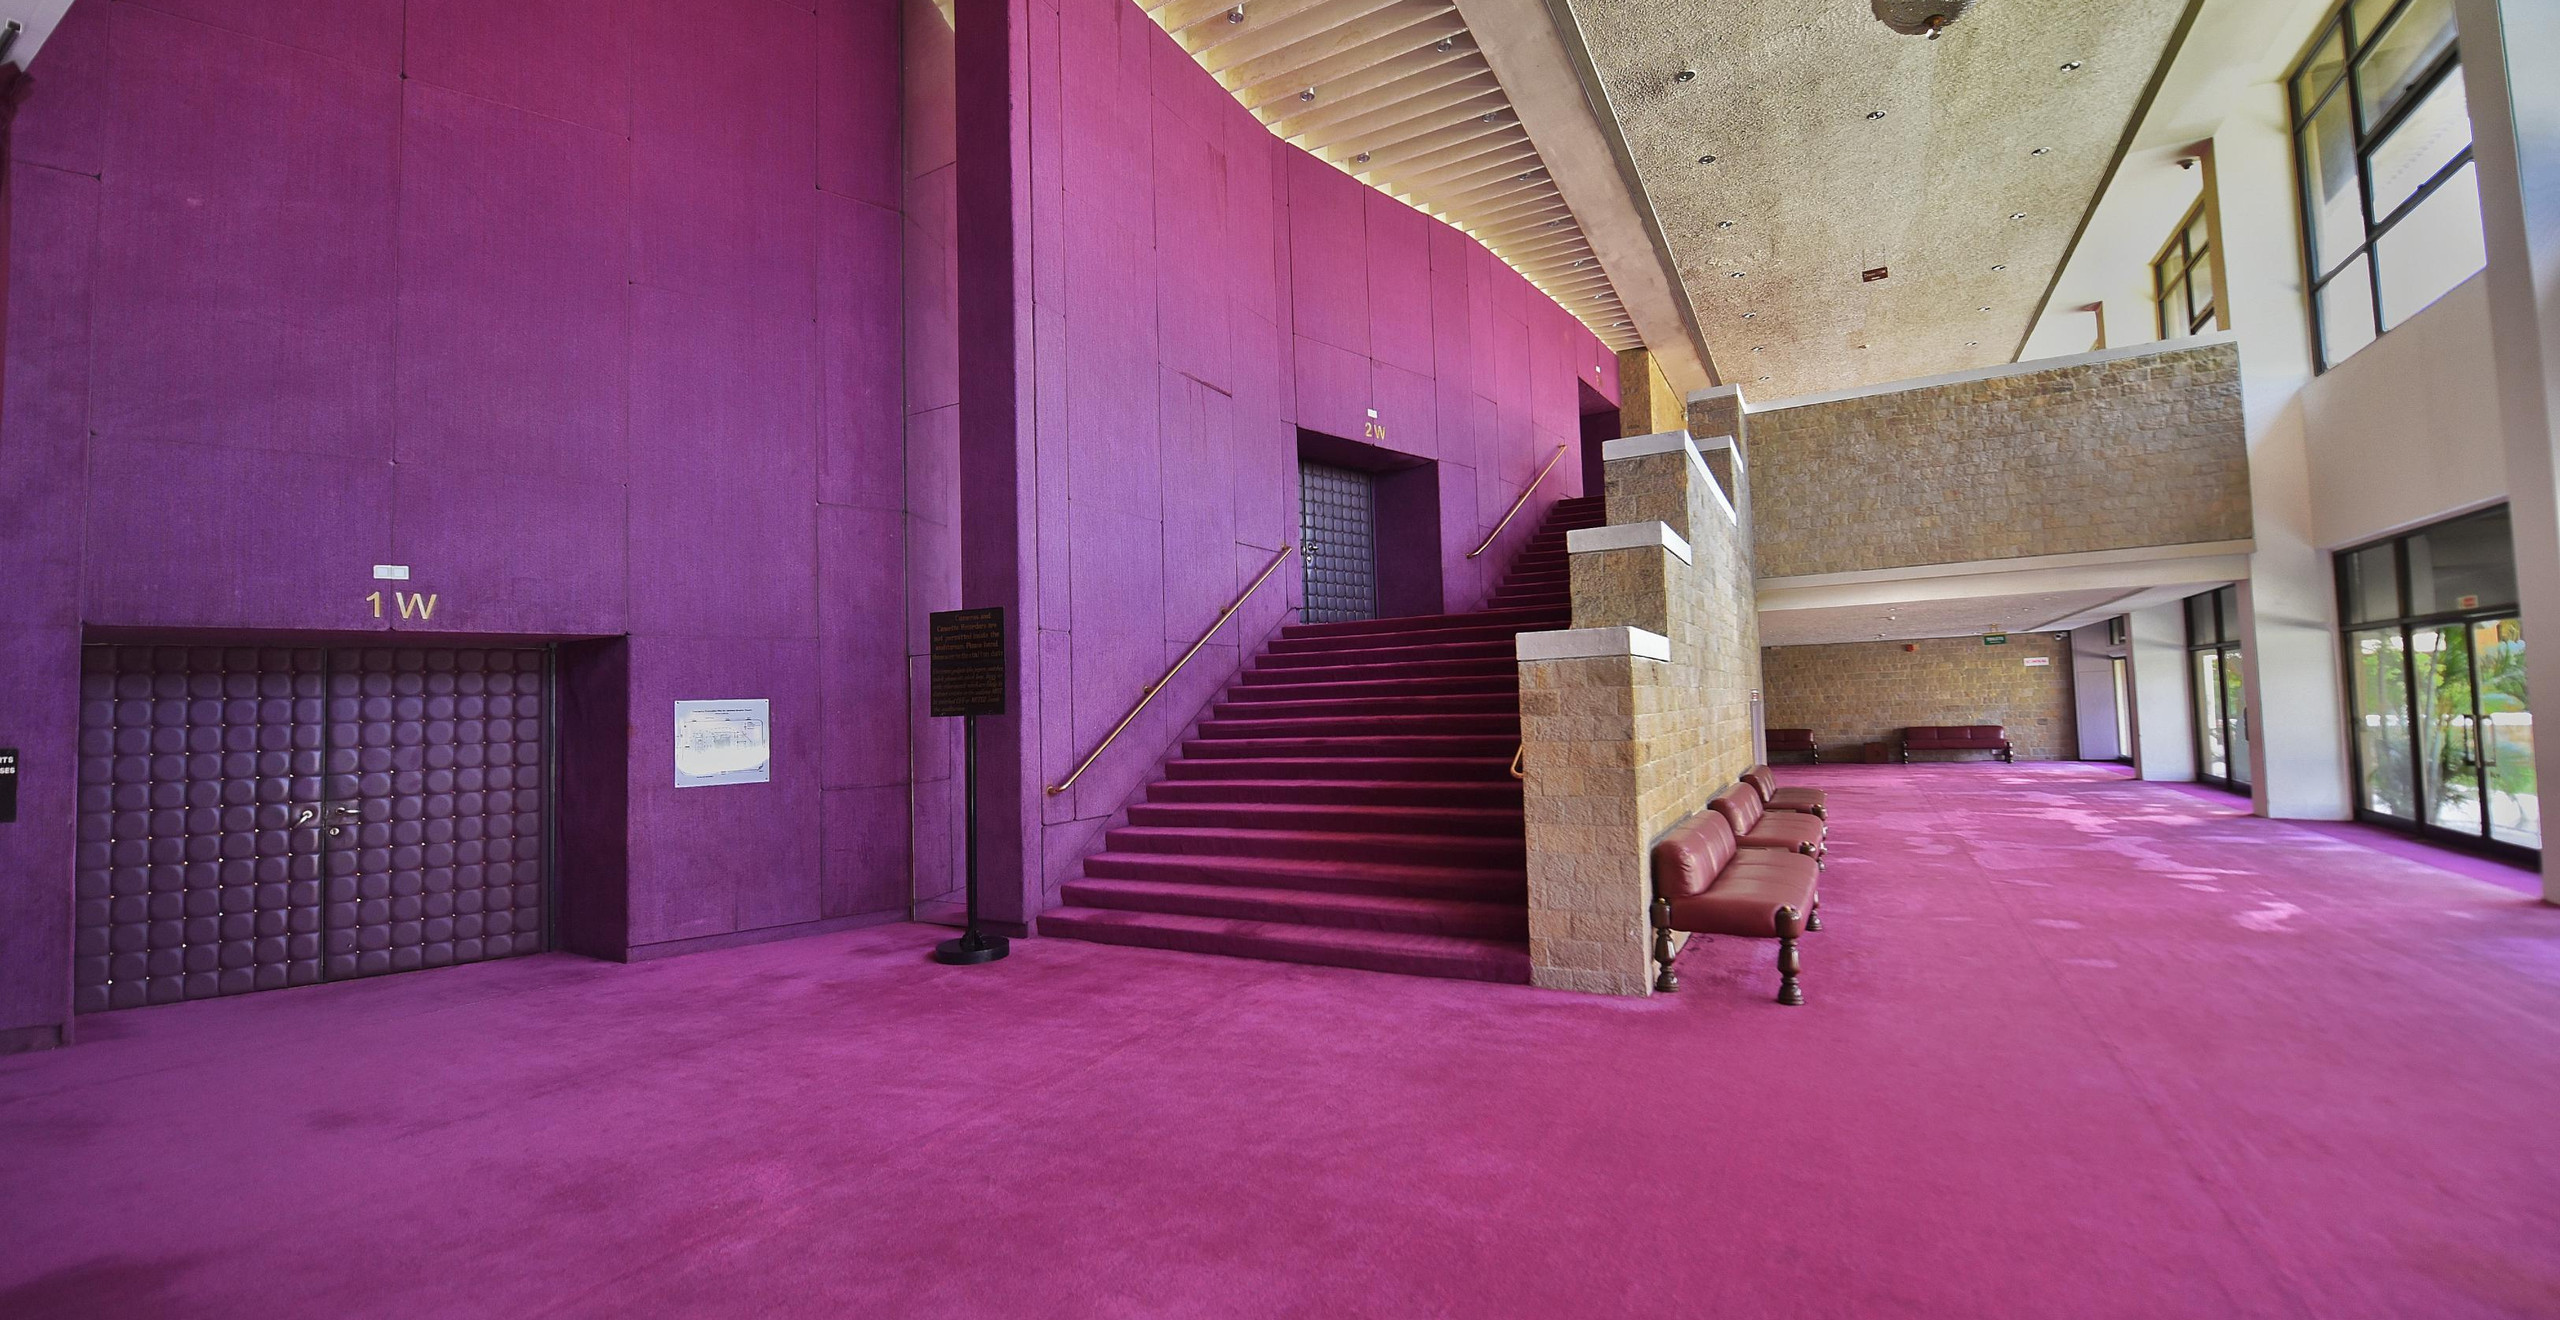 Carpet on Floor and Walls of the NCPA, Mumbai